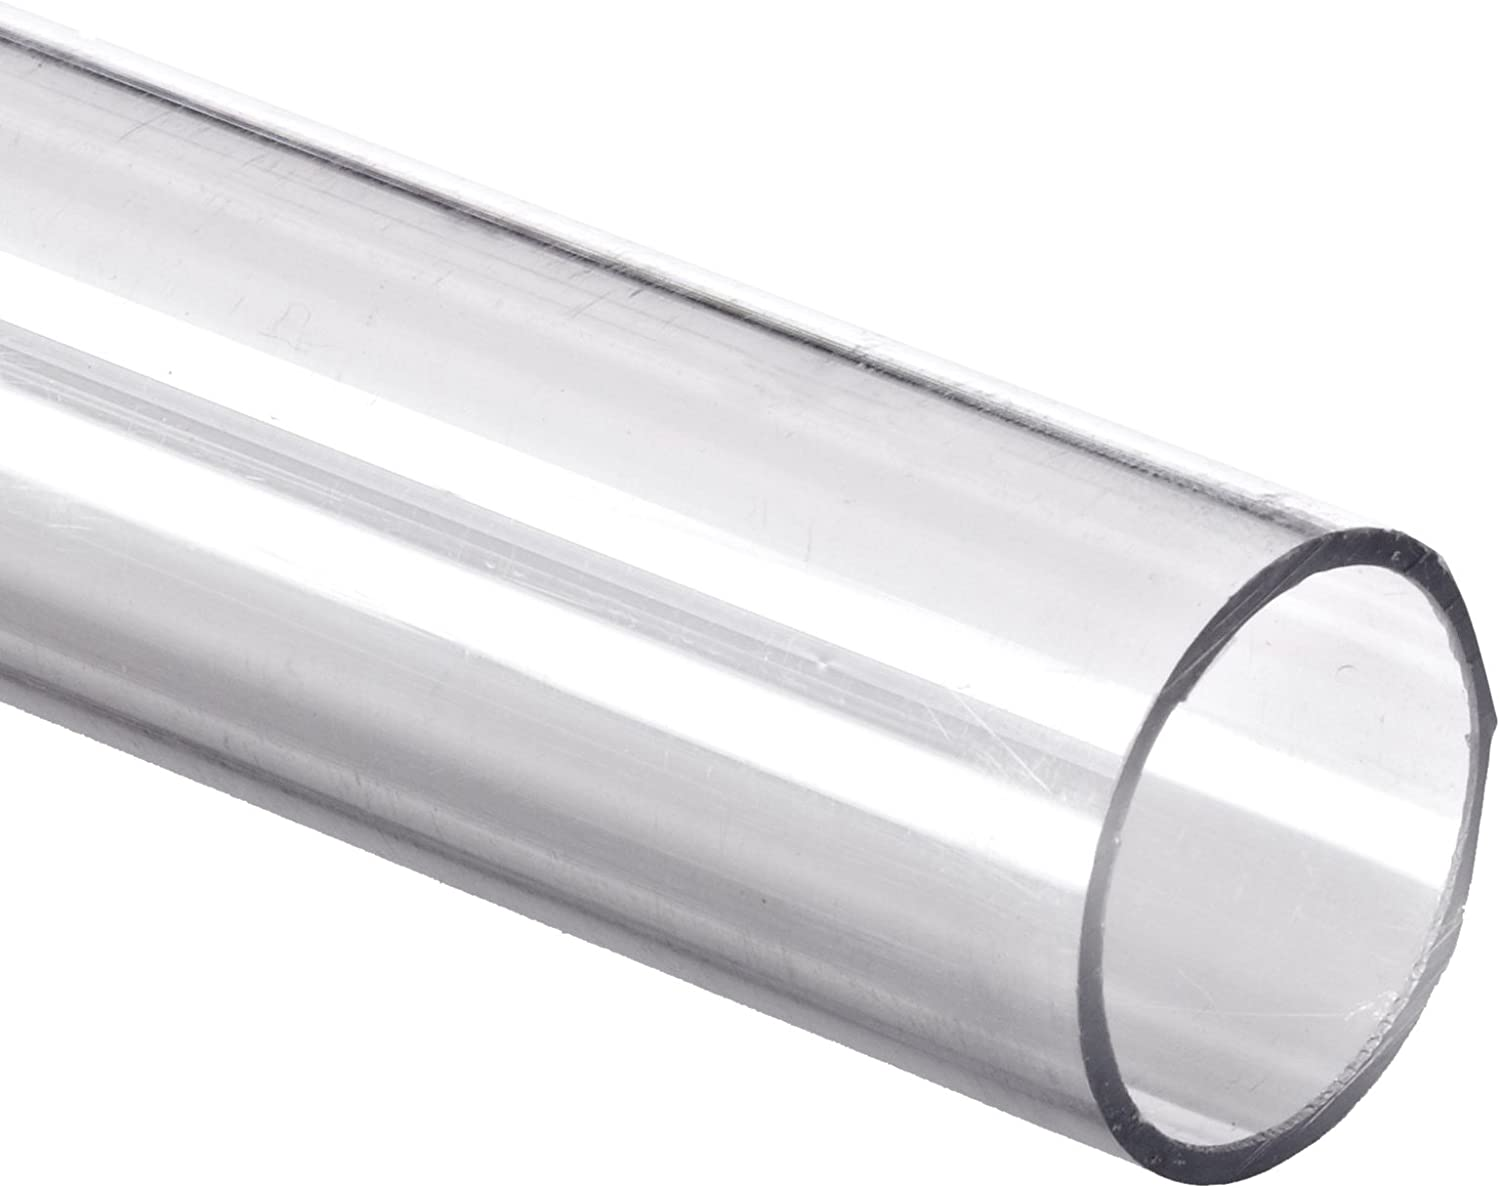 Polycarbonate Tubing 1 7//8 ID x 2 OD x 1//16 Wall Clear Color 48 L